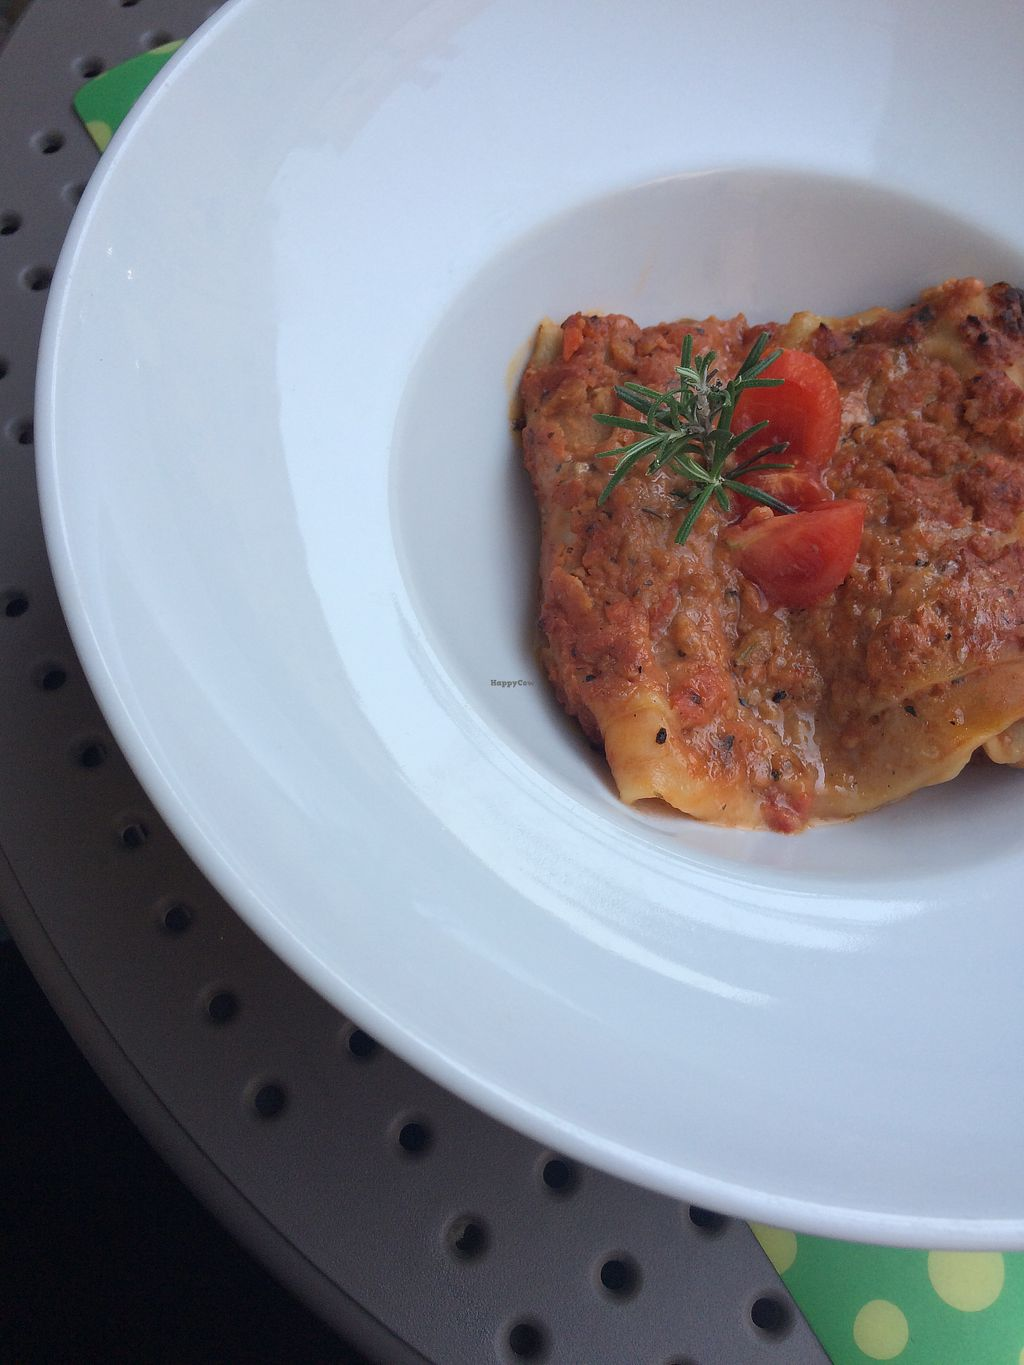 """Photo of Universo Vegano  by <a href=""""/members/profile/siderealfire"""">siderealfire</a> <br/>Vegan lasagna Tastes like real traditional Lasagne alla bolognese <br/> April 24, 2018  - <a href='/contact/abuse/image/47226/390481'>Report</a>"""